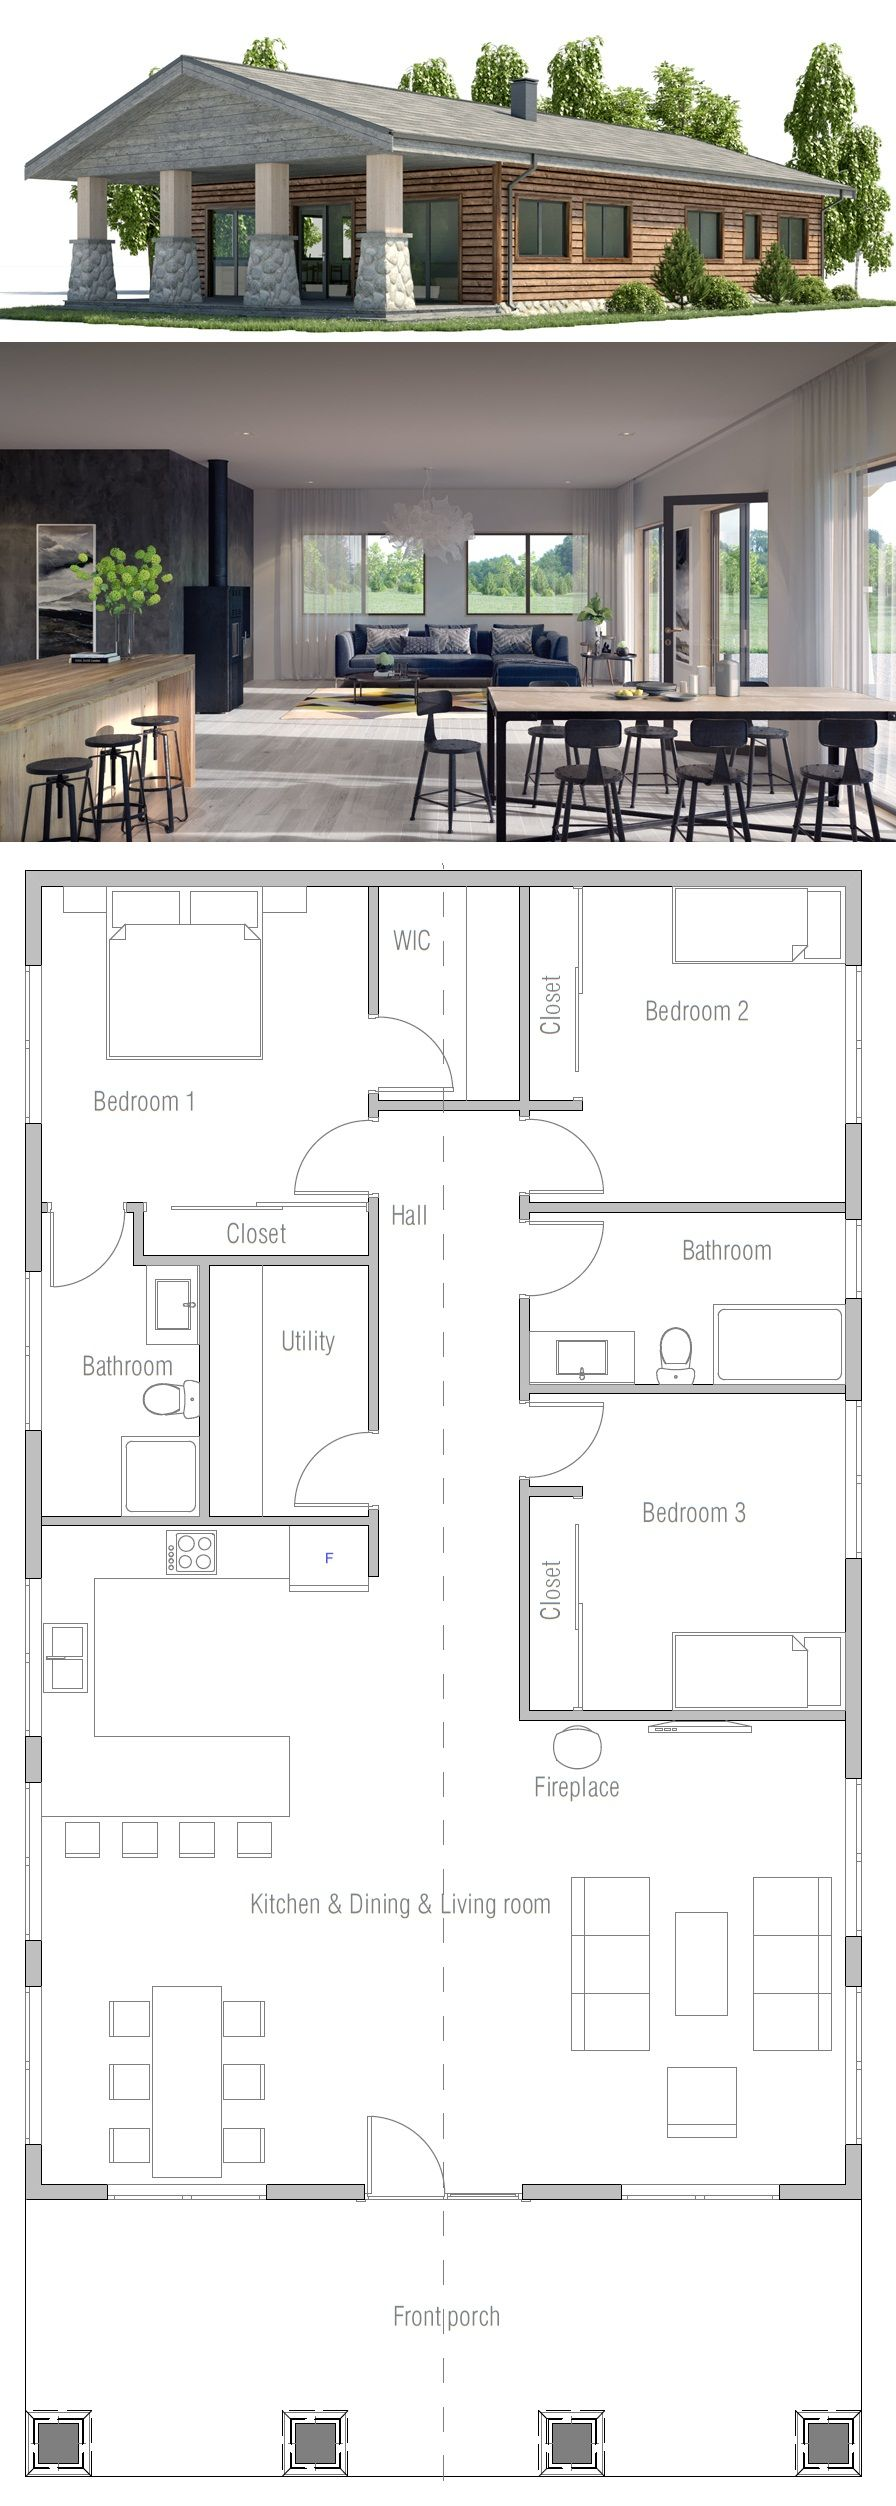 simple 3 bedroom house plans%0A Small House Plan  bedroom   turned into a library study area and door to